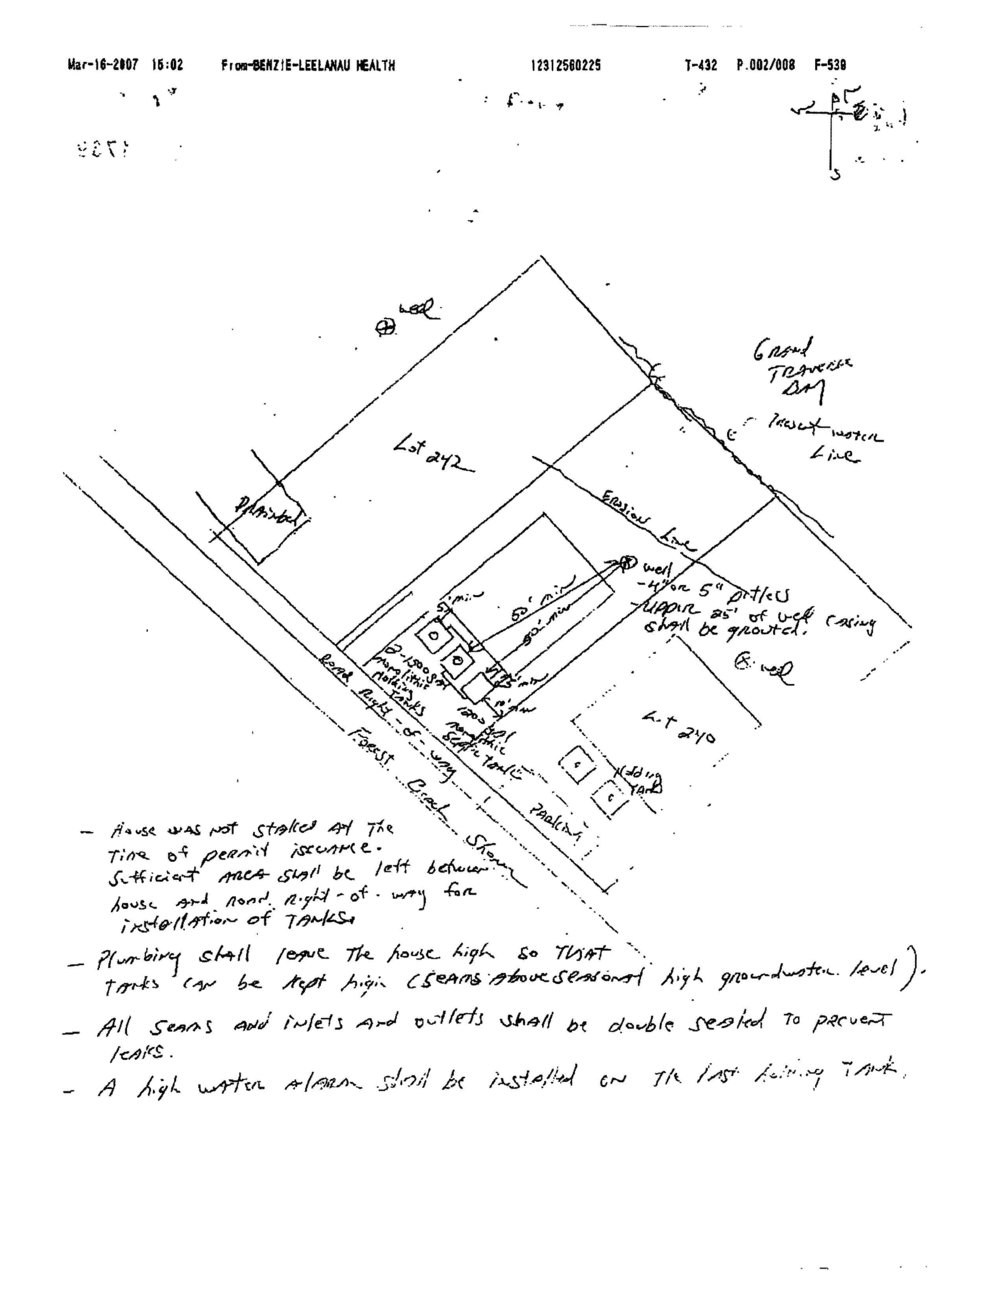 Lot 241 Forest Beach Shores, Northport waterfront lot in Leelanau County for sale by Oltersdorf Realty LLC Leelanau County Realtors (13).jpg